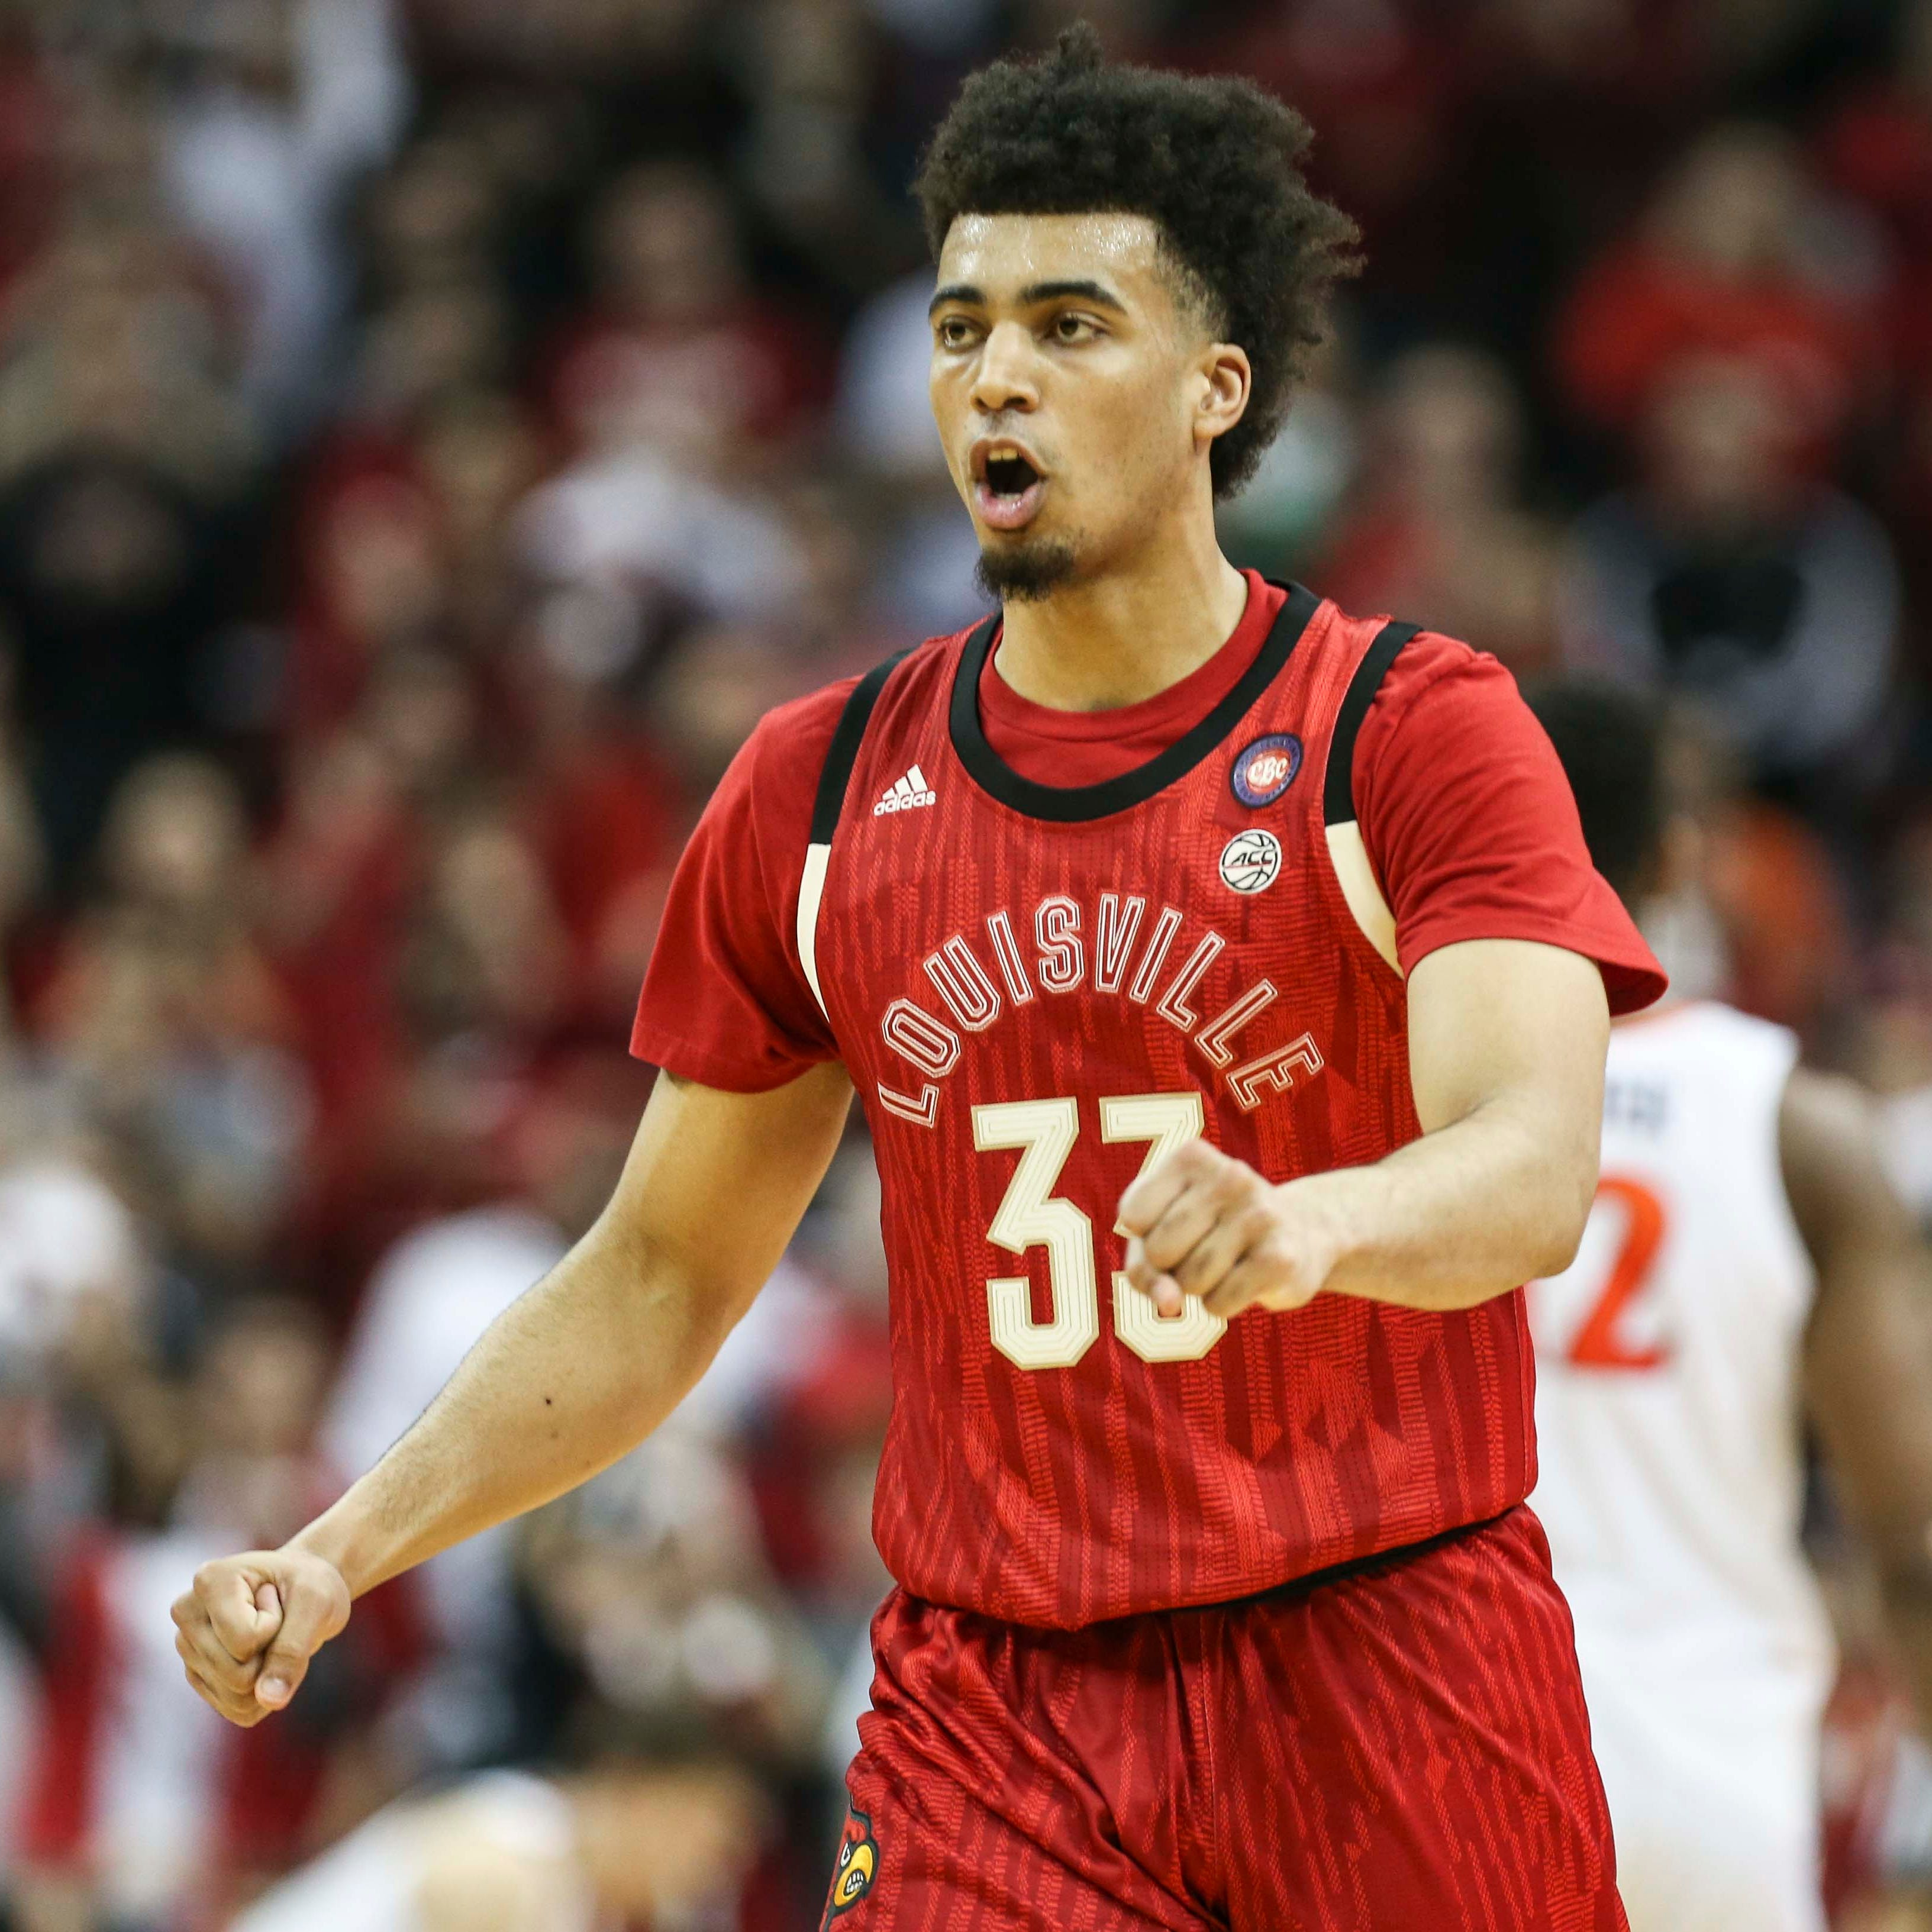 Louisville's Jordan Nwora has 'small injury' that could affect NBA combine